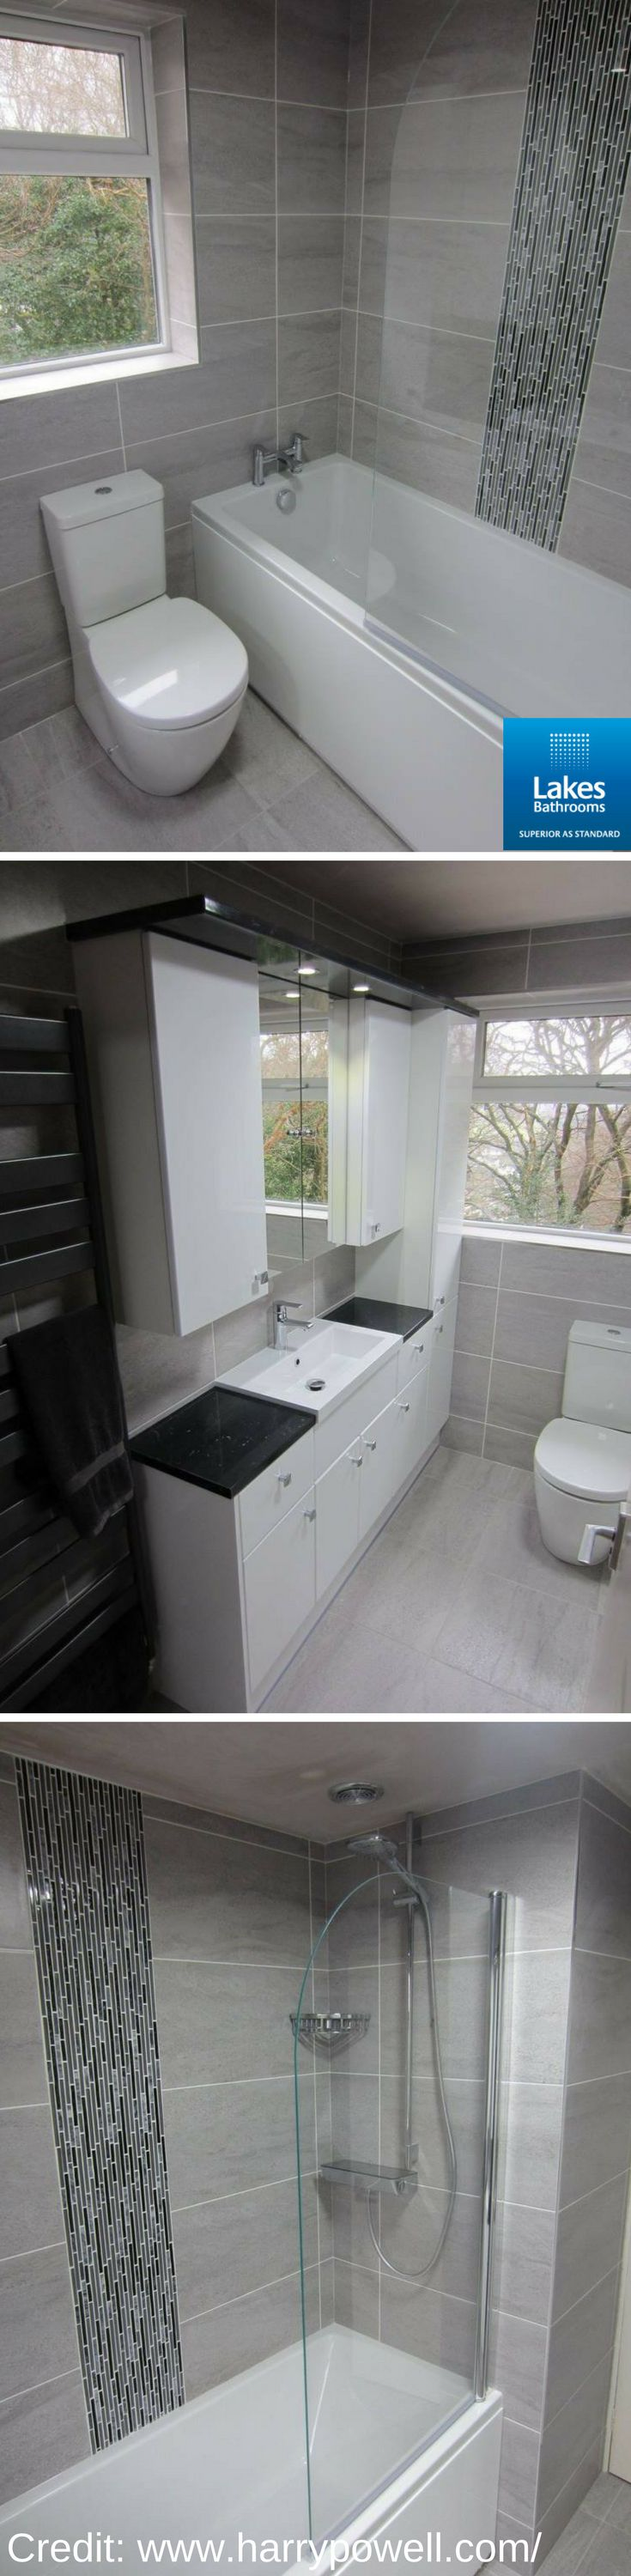 Great to see our Curved Bath Screen used in yet another #RealLakesBathrooms. Great job by Harry Powell (http://www.harrypowell.com/)  #bathroomremodel #bathroomideas